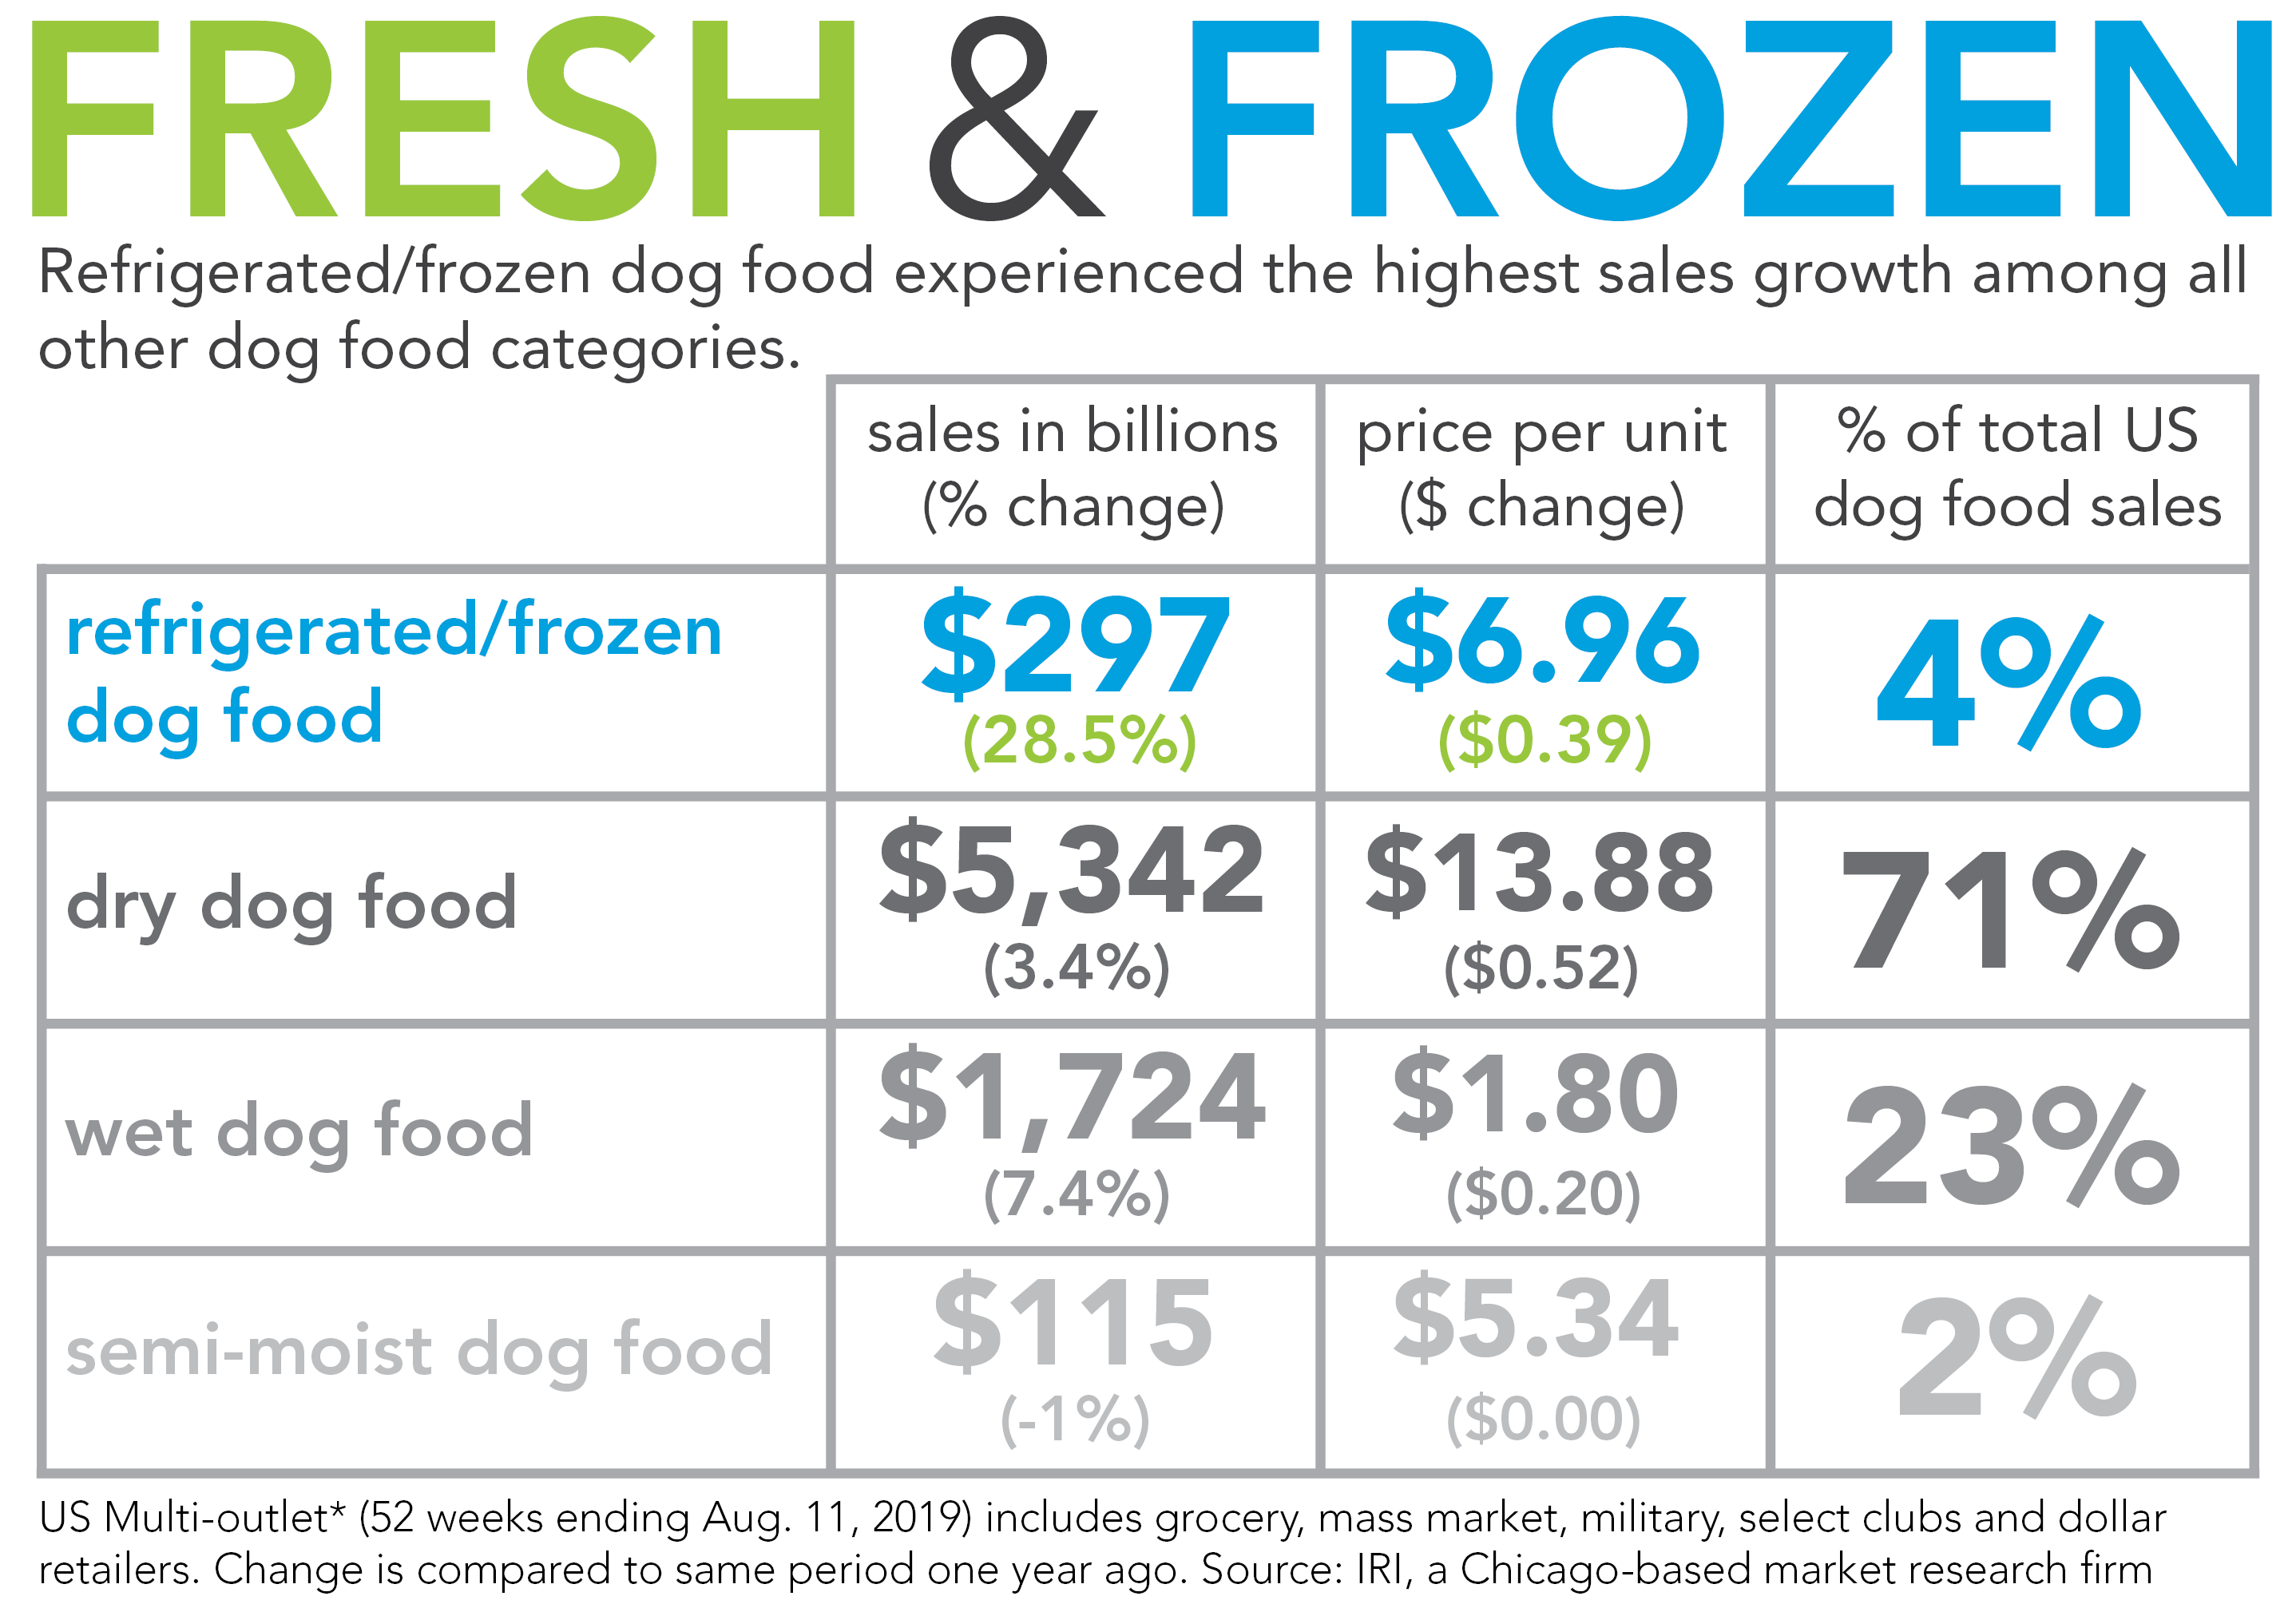 Fresh and frozen comparative dog food sales growth